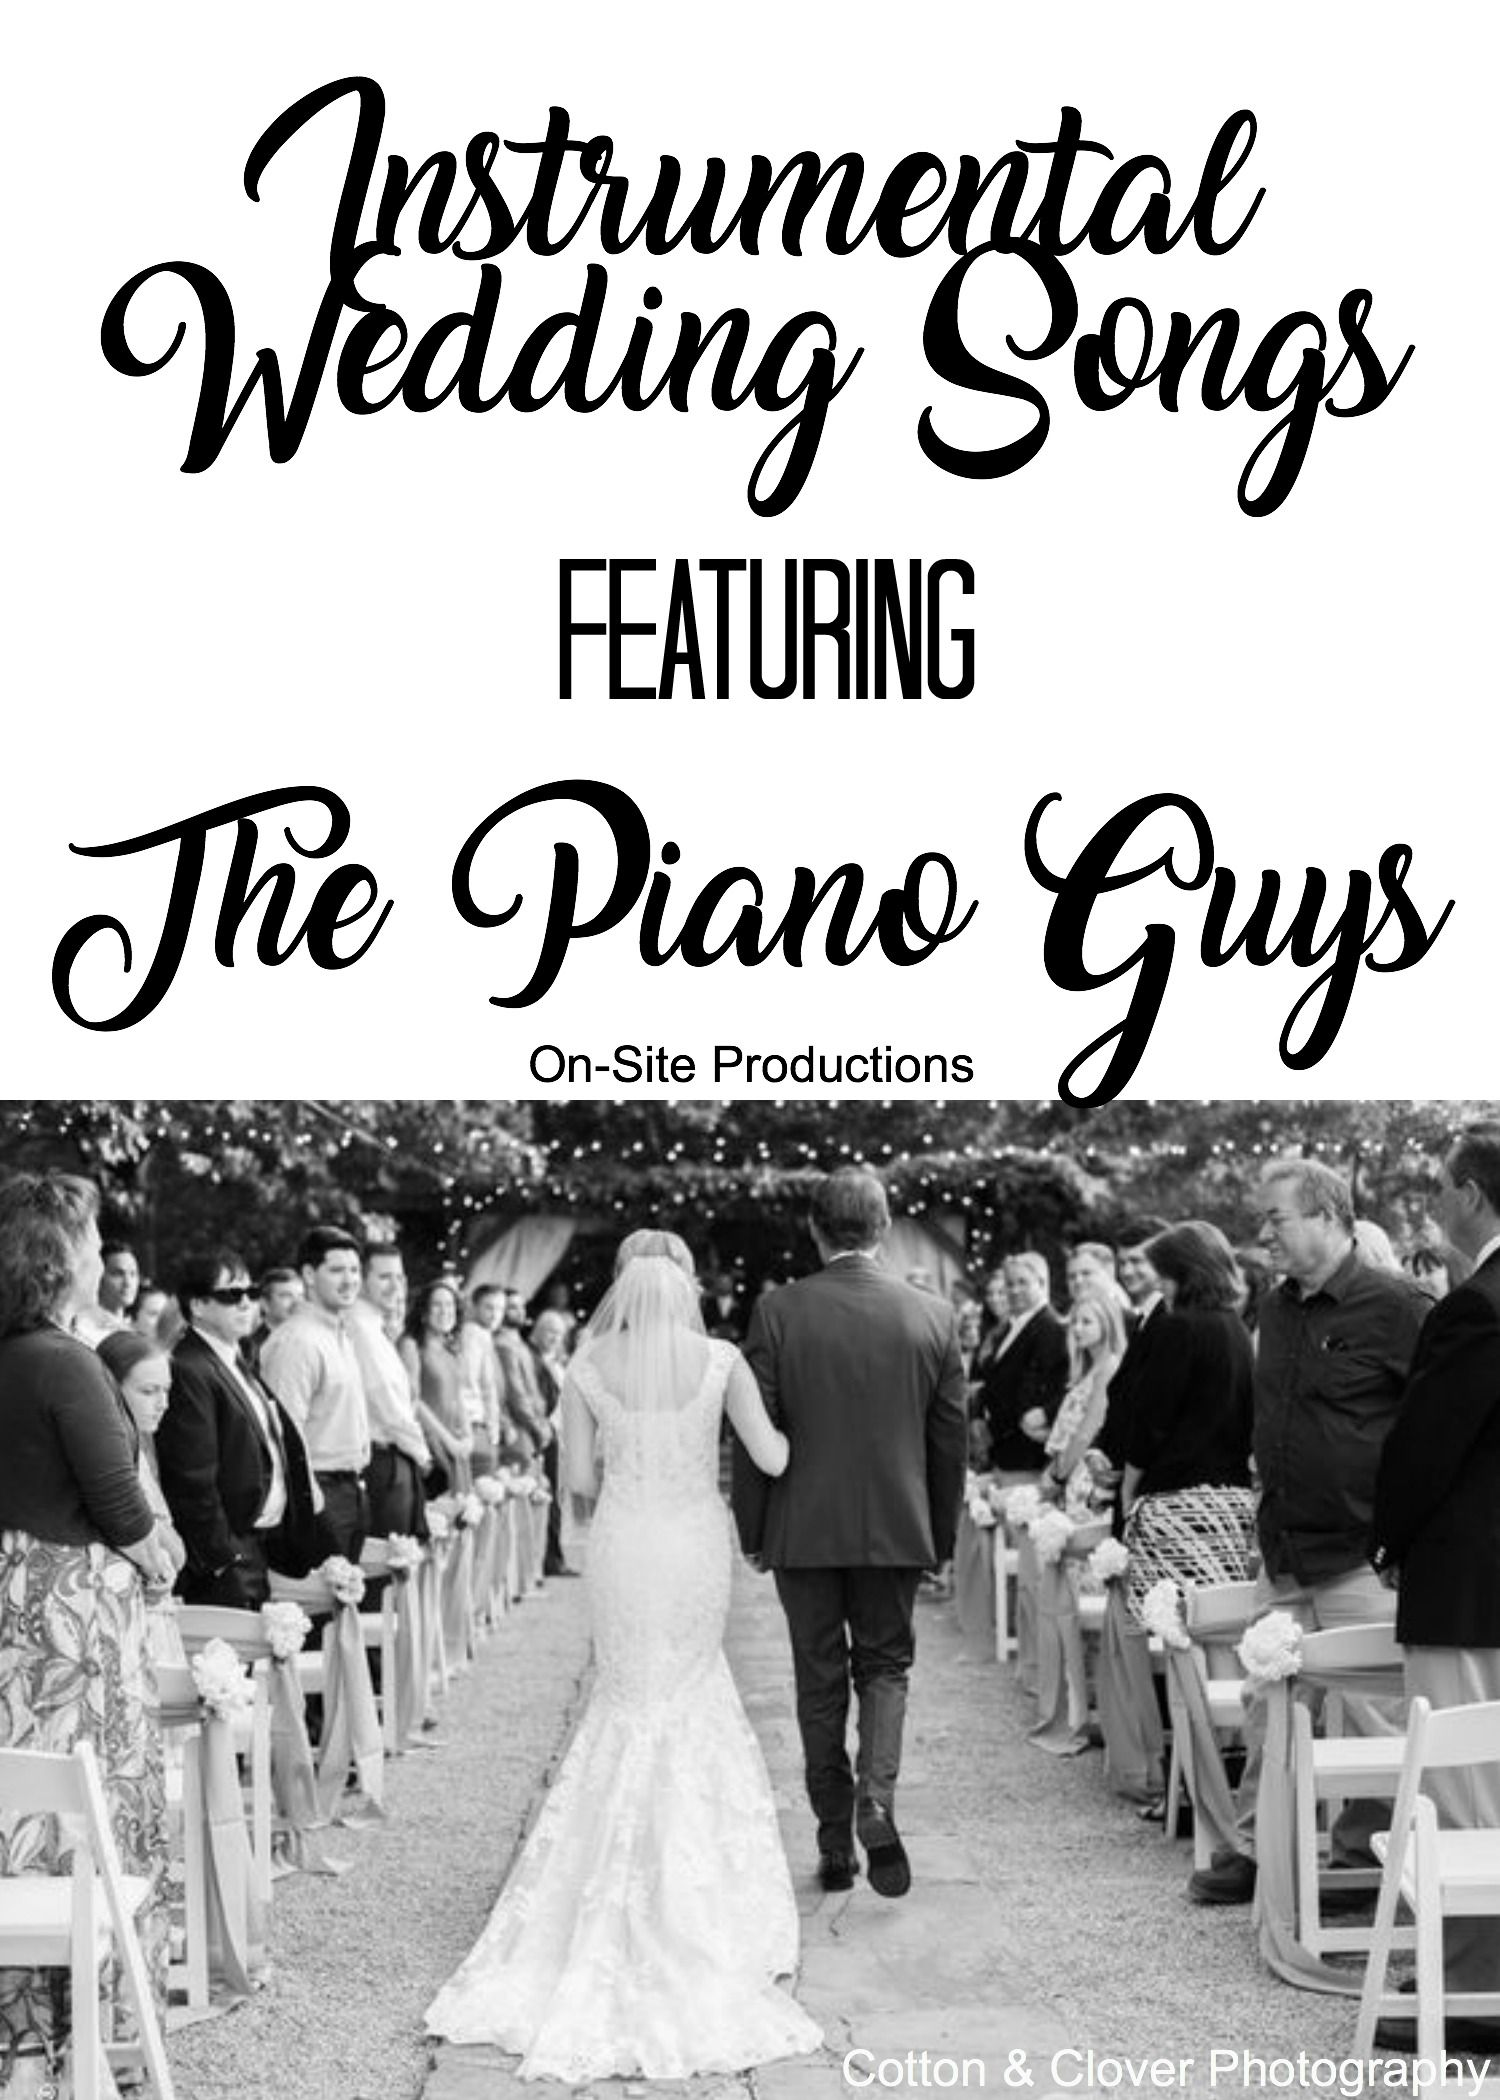 Piano Songs To Walk Down The Aisle To: What Song Will You Walk Down The Aisle To?I'm Guessing It